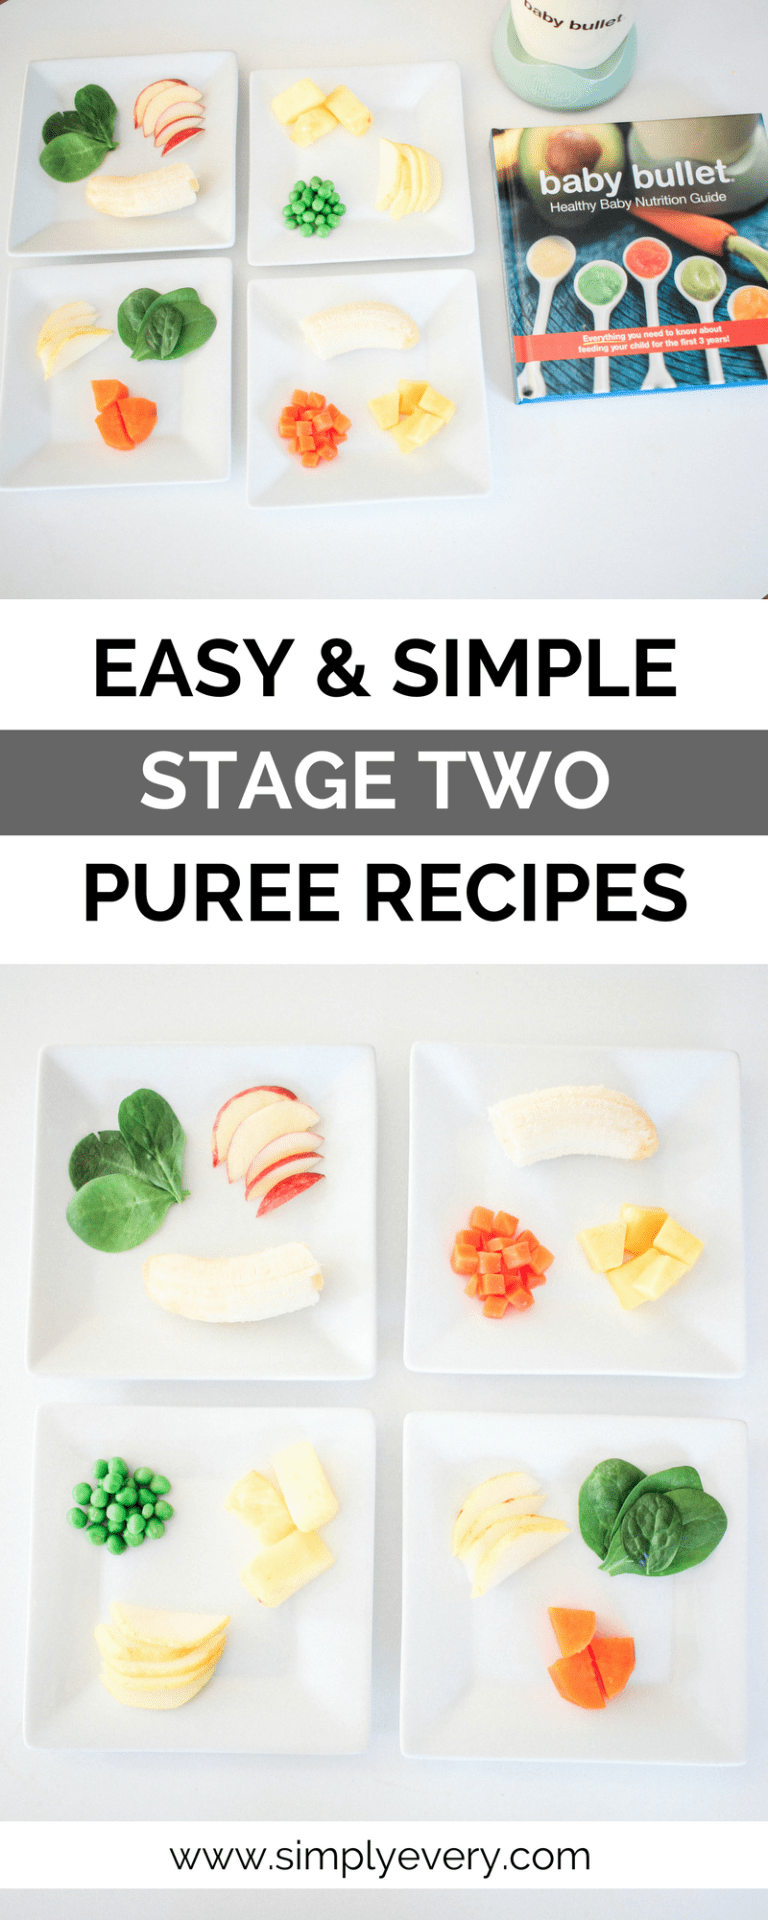 Easy & Simple Stage Two Puree Recipes | Baby food recipes ...